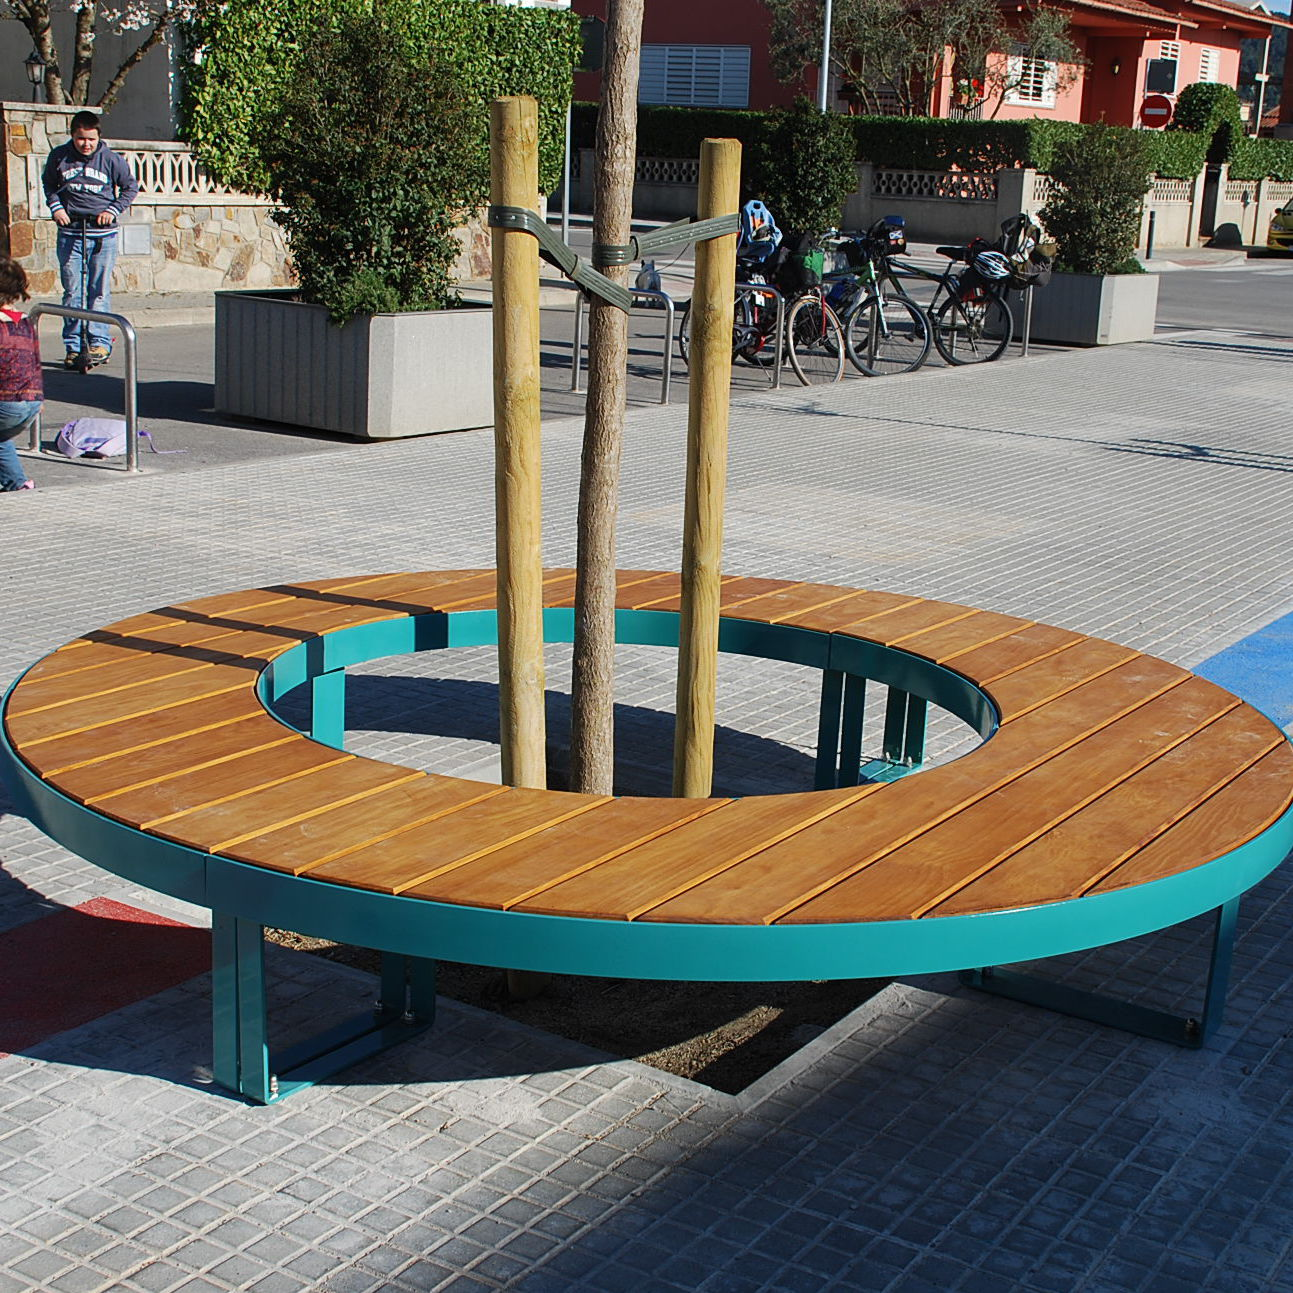 Public bench / contemporary / wooden / galvanized steel PLAY BENCHES by  FREPAT FREPAT URBAN EQUIPMENT ...